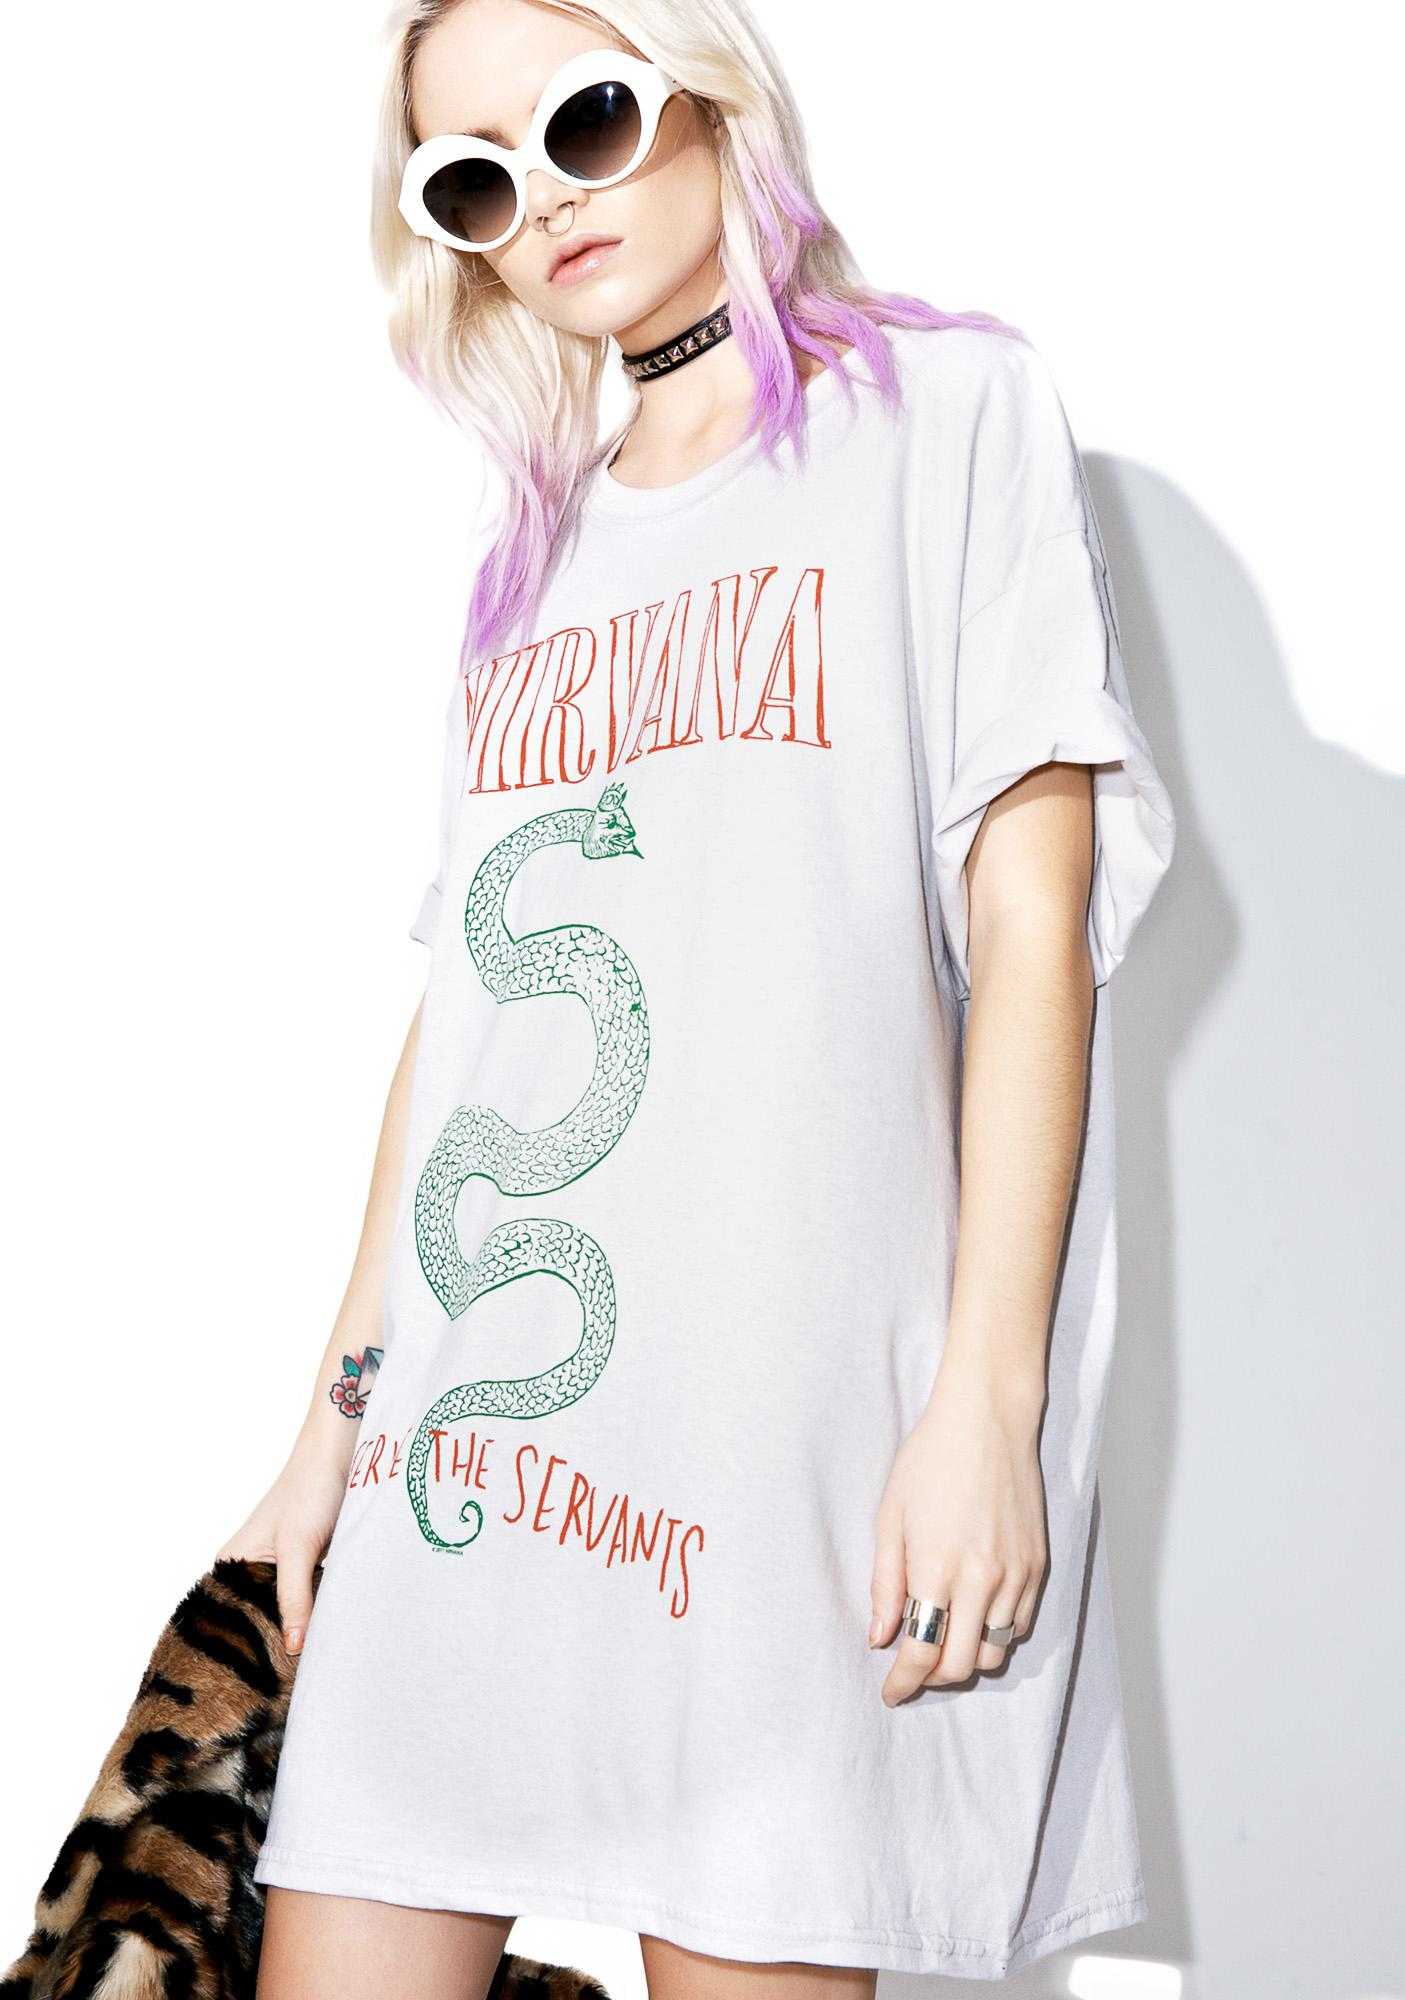 Serpent's Song Tee